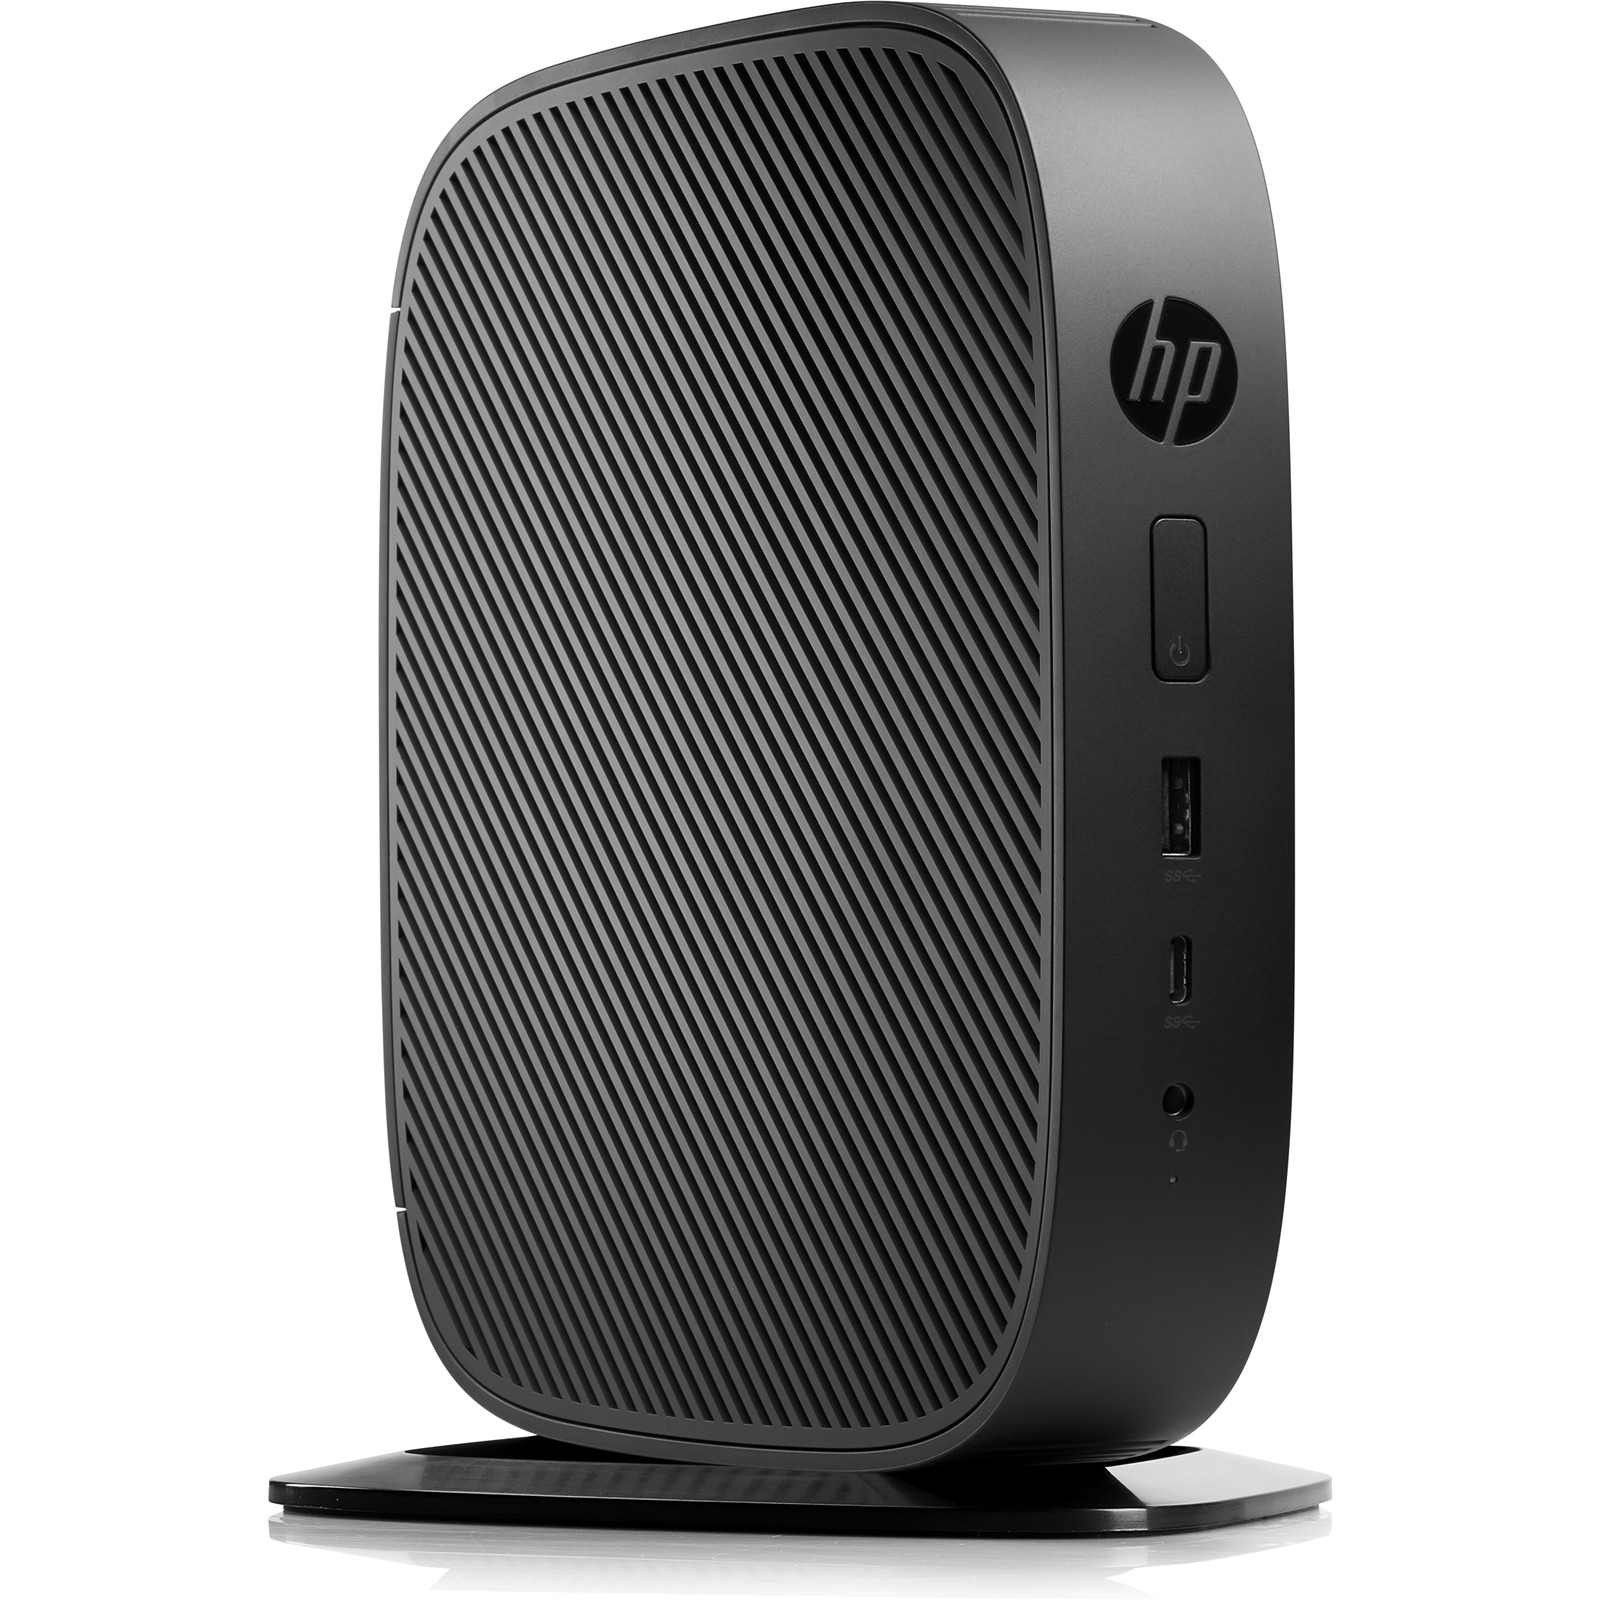 HP Box Damaged T530 Thin Client, AMD G-Series GX-215JJ (2 Core)